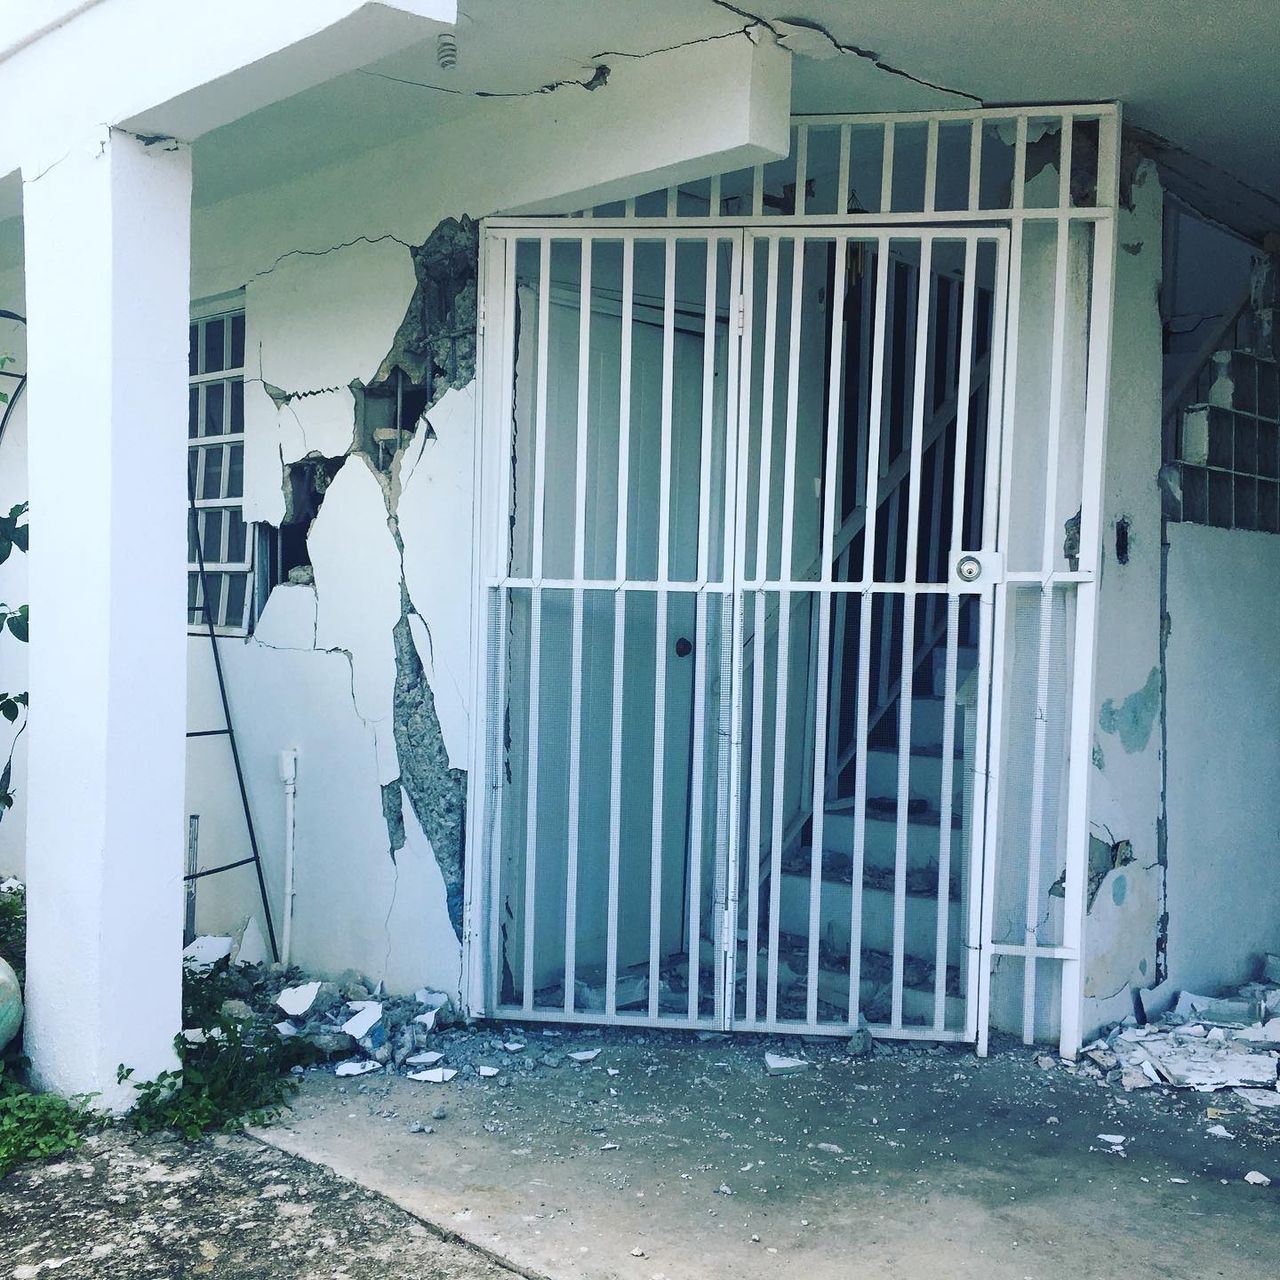 Structural damage on a house in southern Puerto Rico